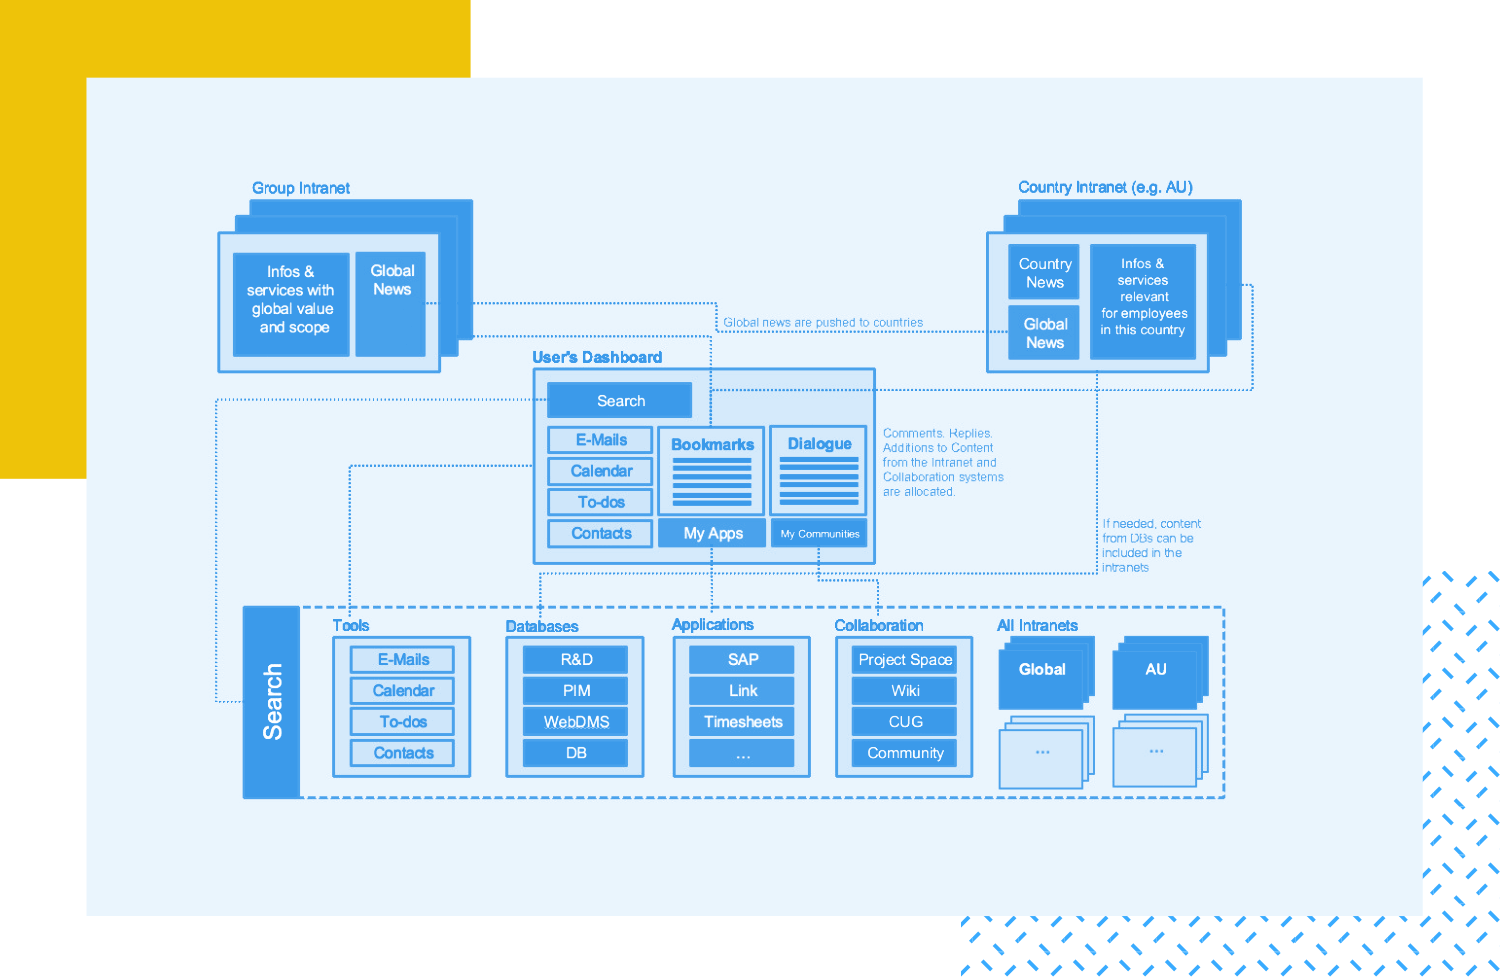 Information architecture - the process of creating structures